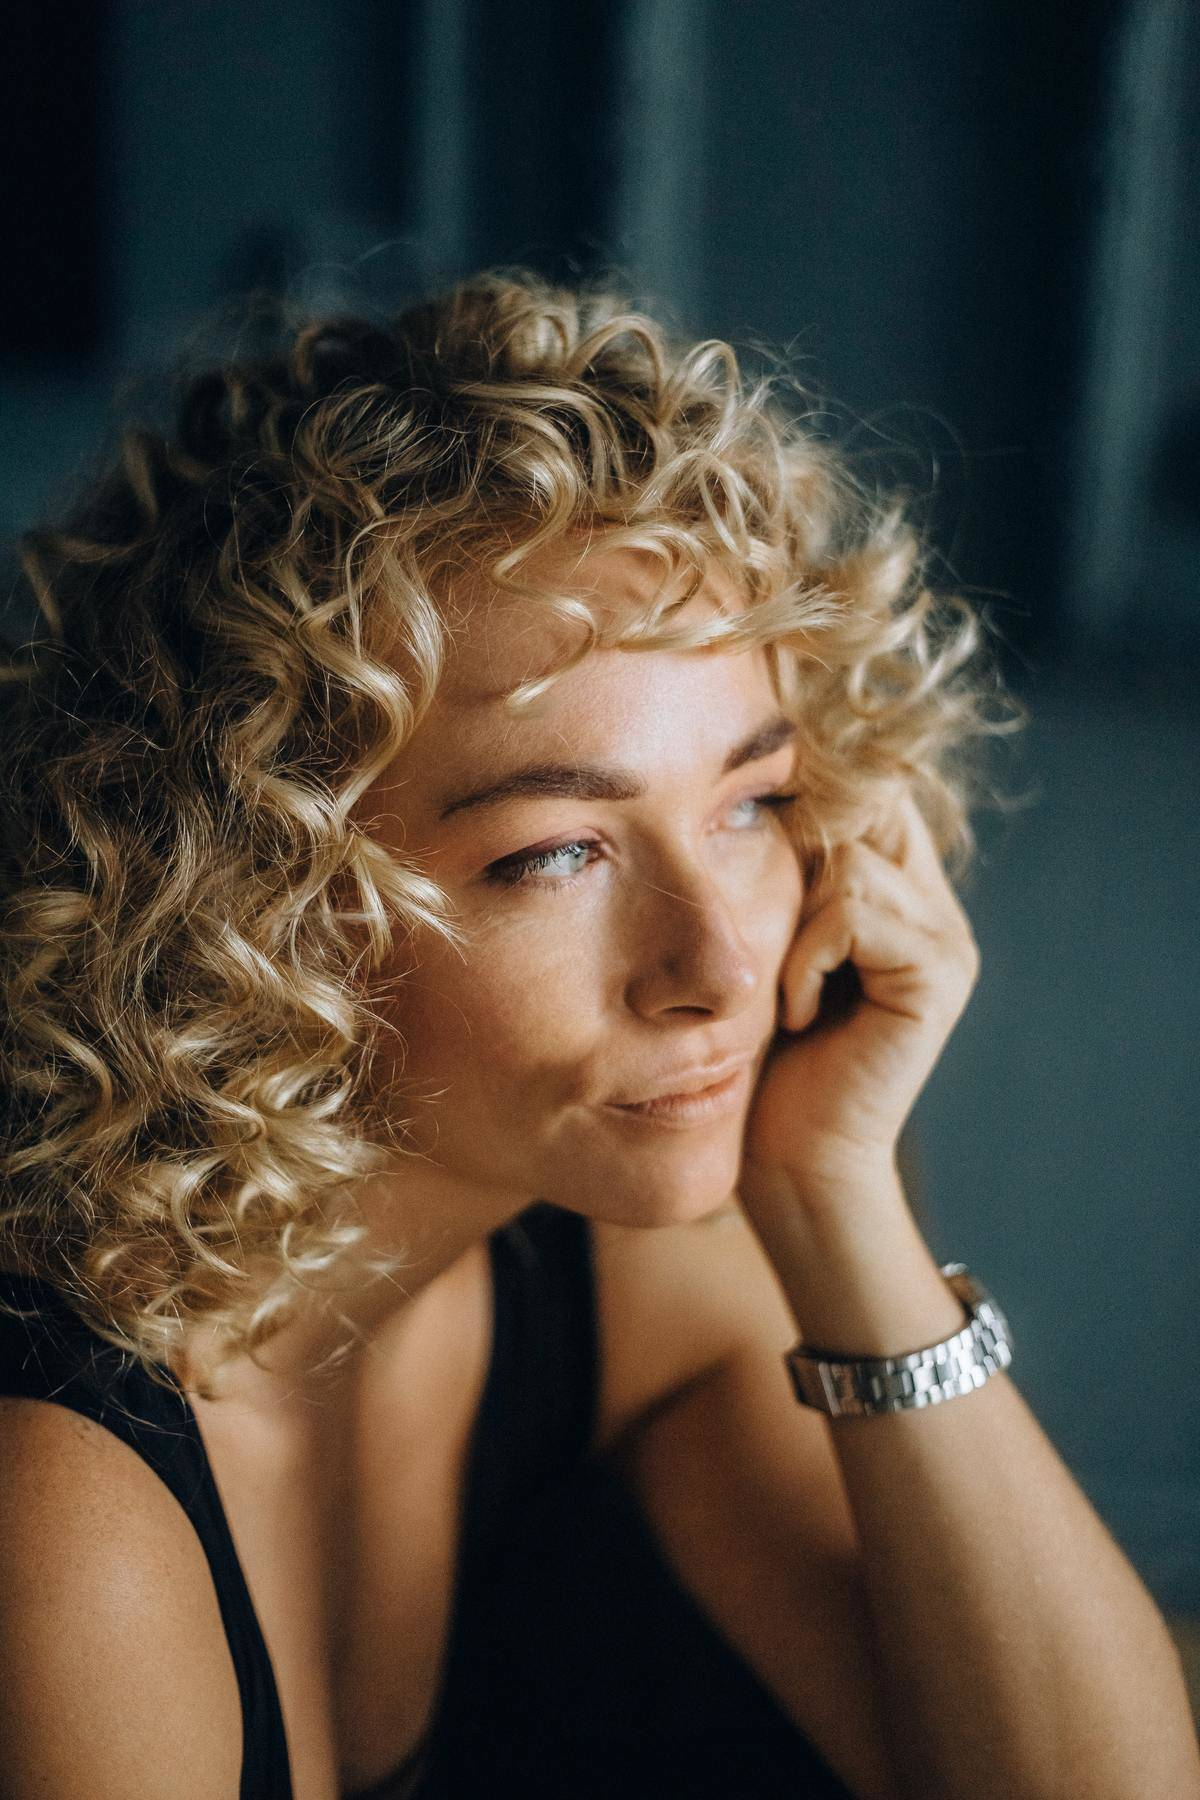 woman with curly hair and hand on her cheek